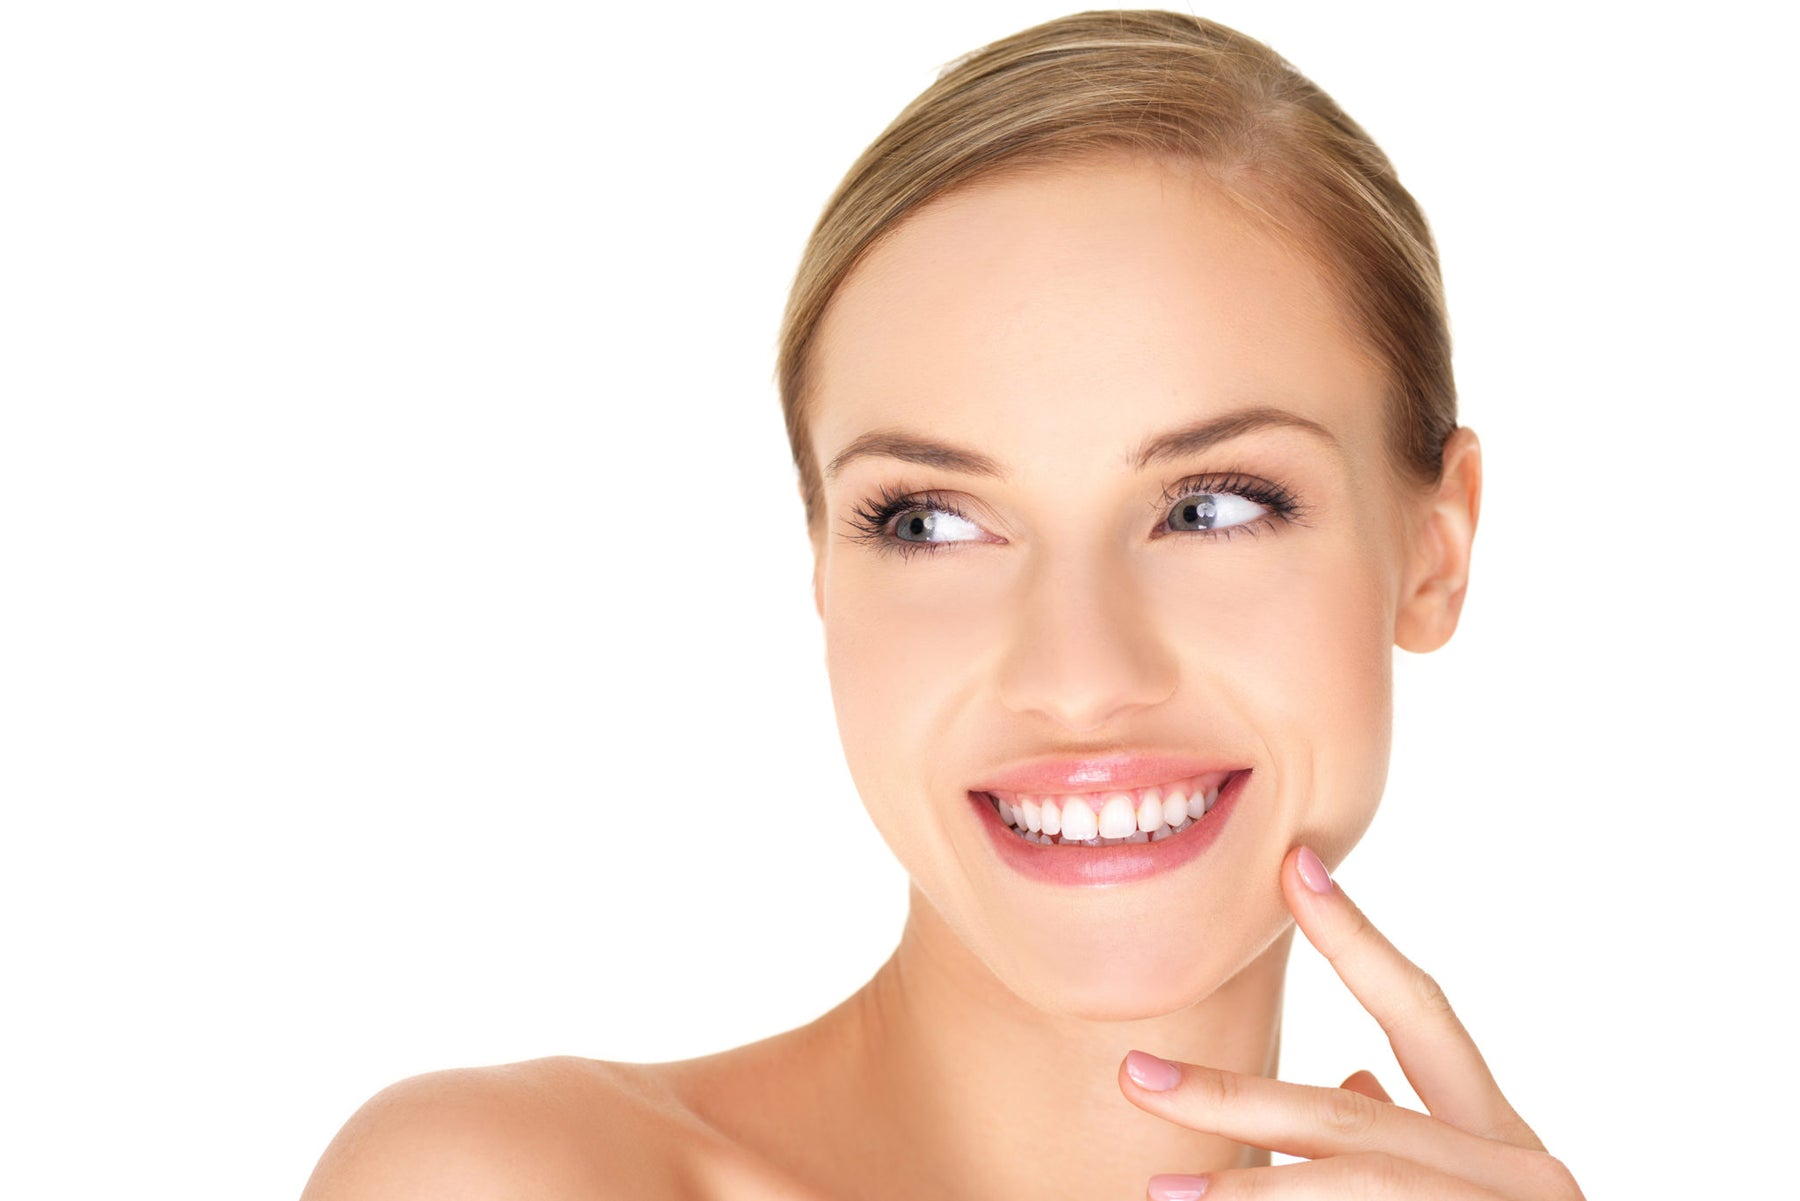 6 ways to whiten your teeth naturally at home